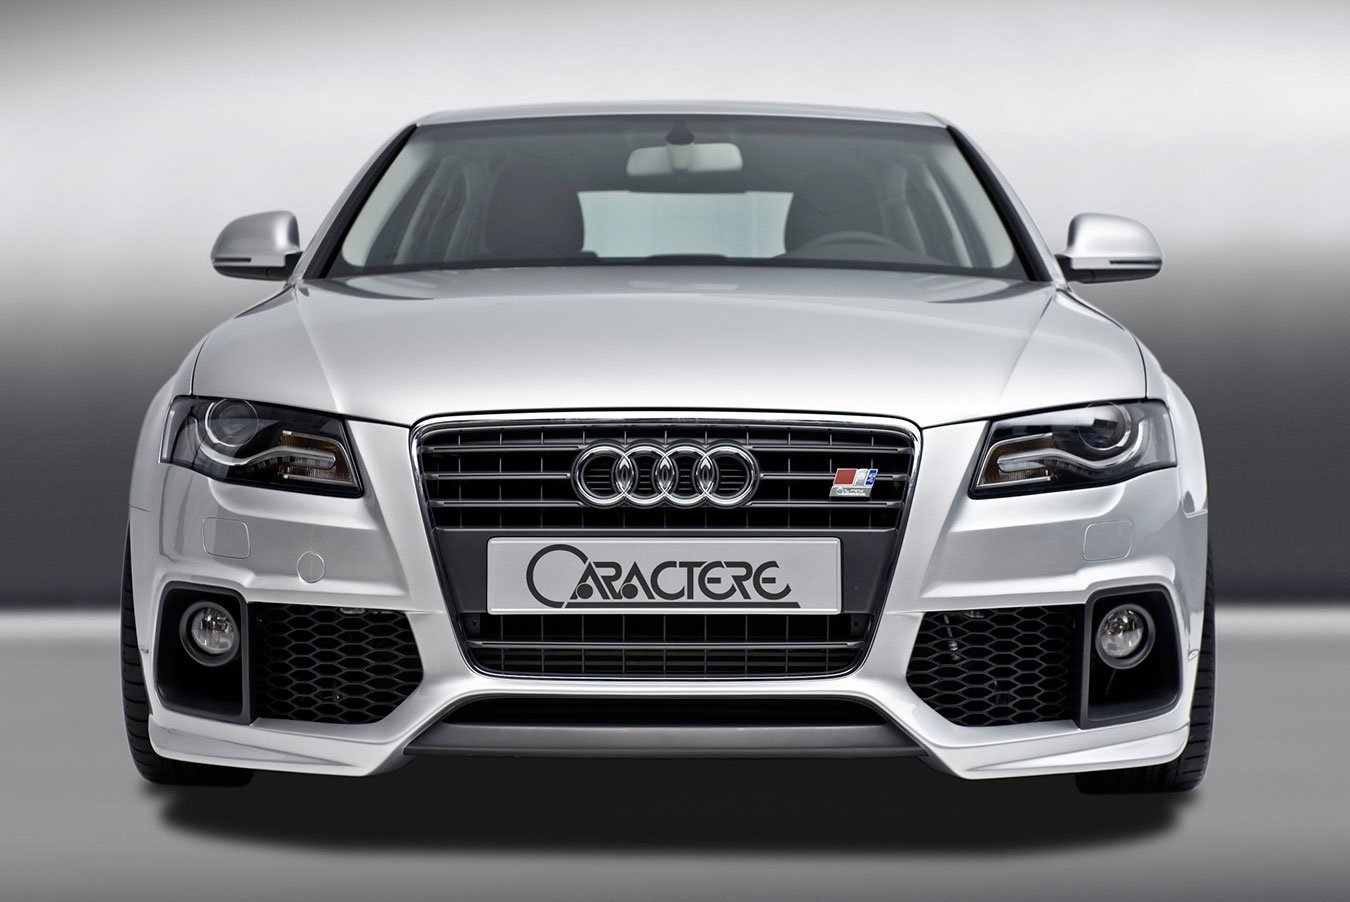 Latest Caractere Front Bumper For Cars With Parking Sensors Fits Free Download